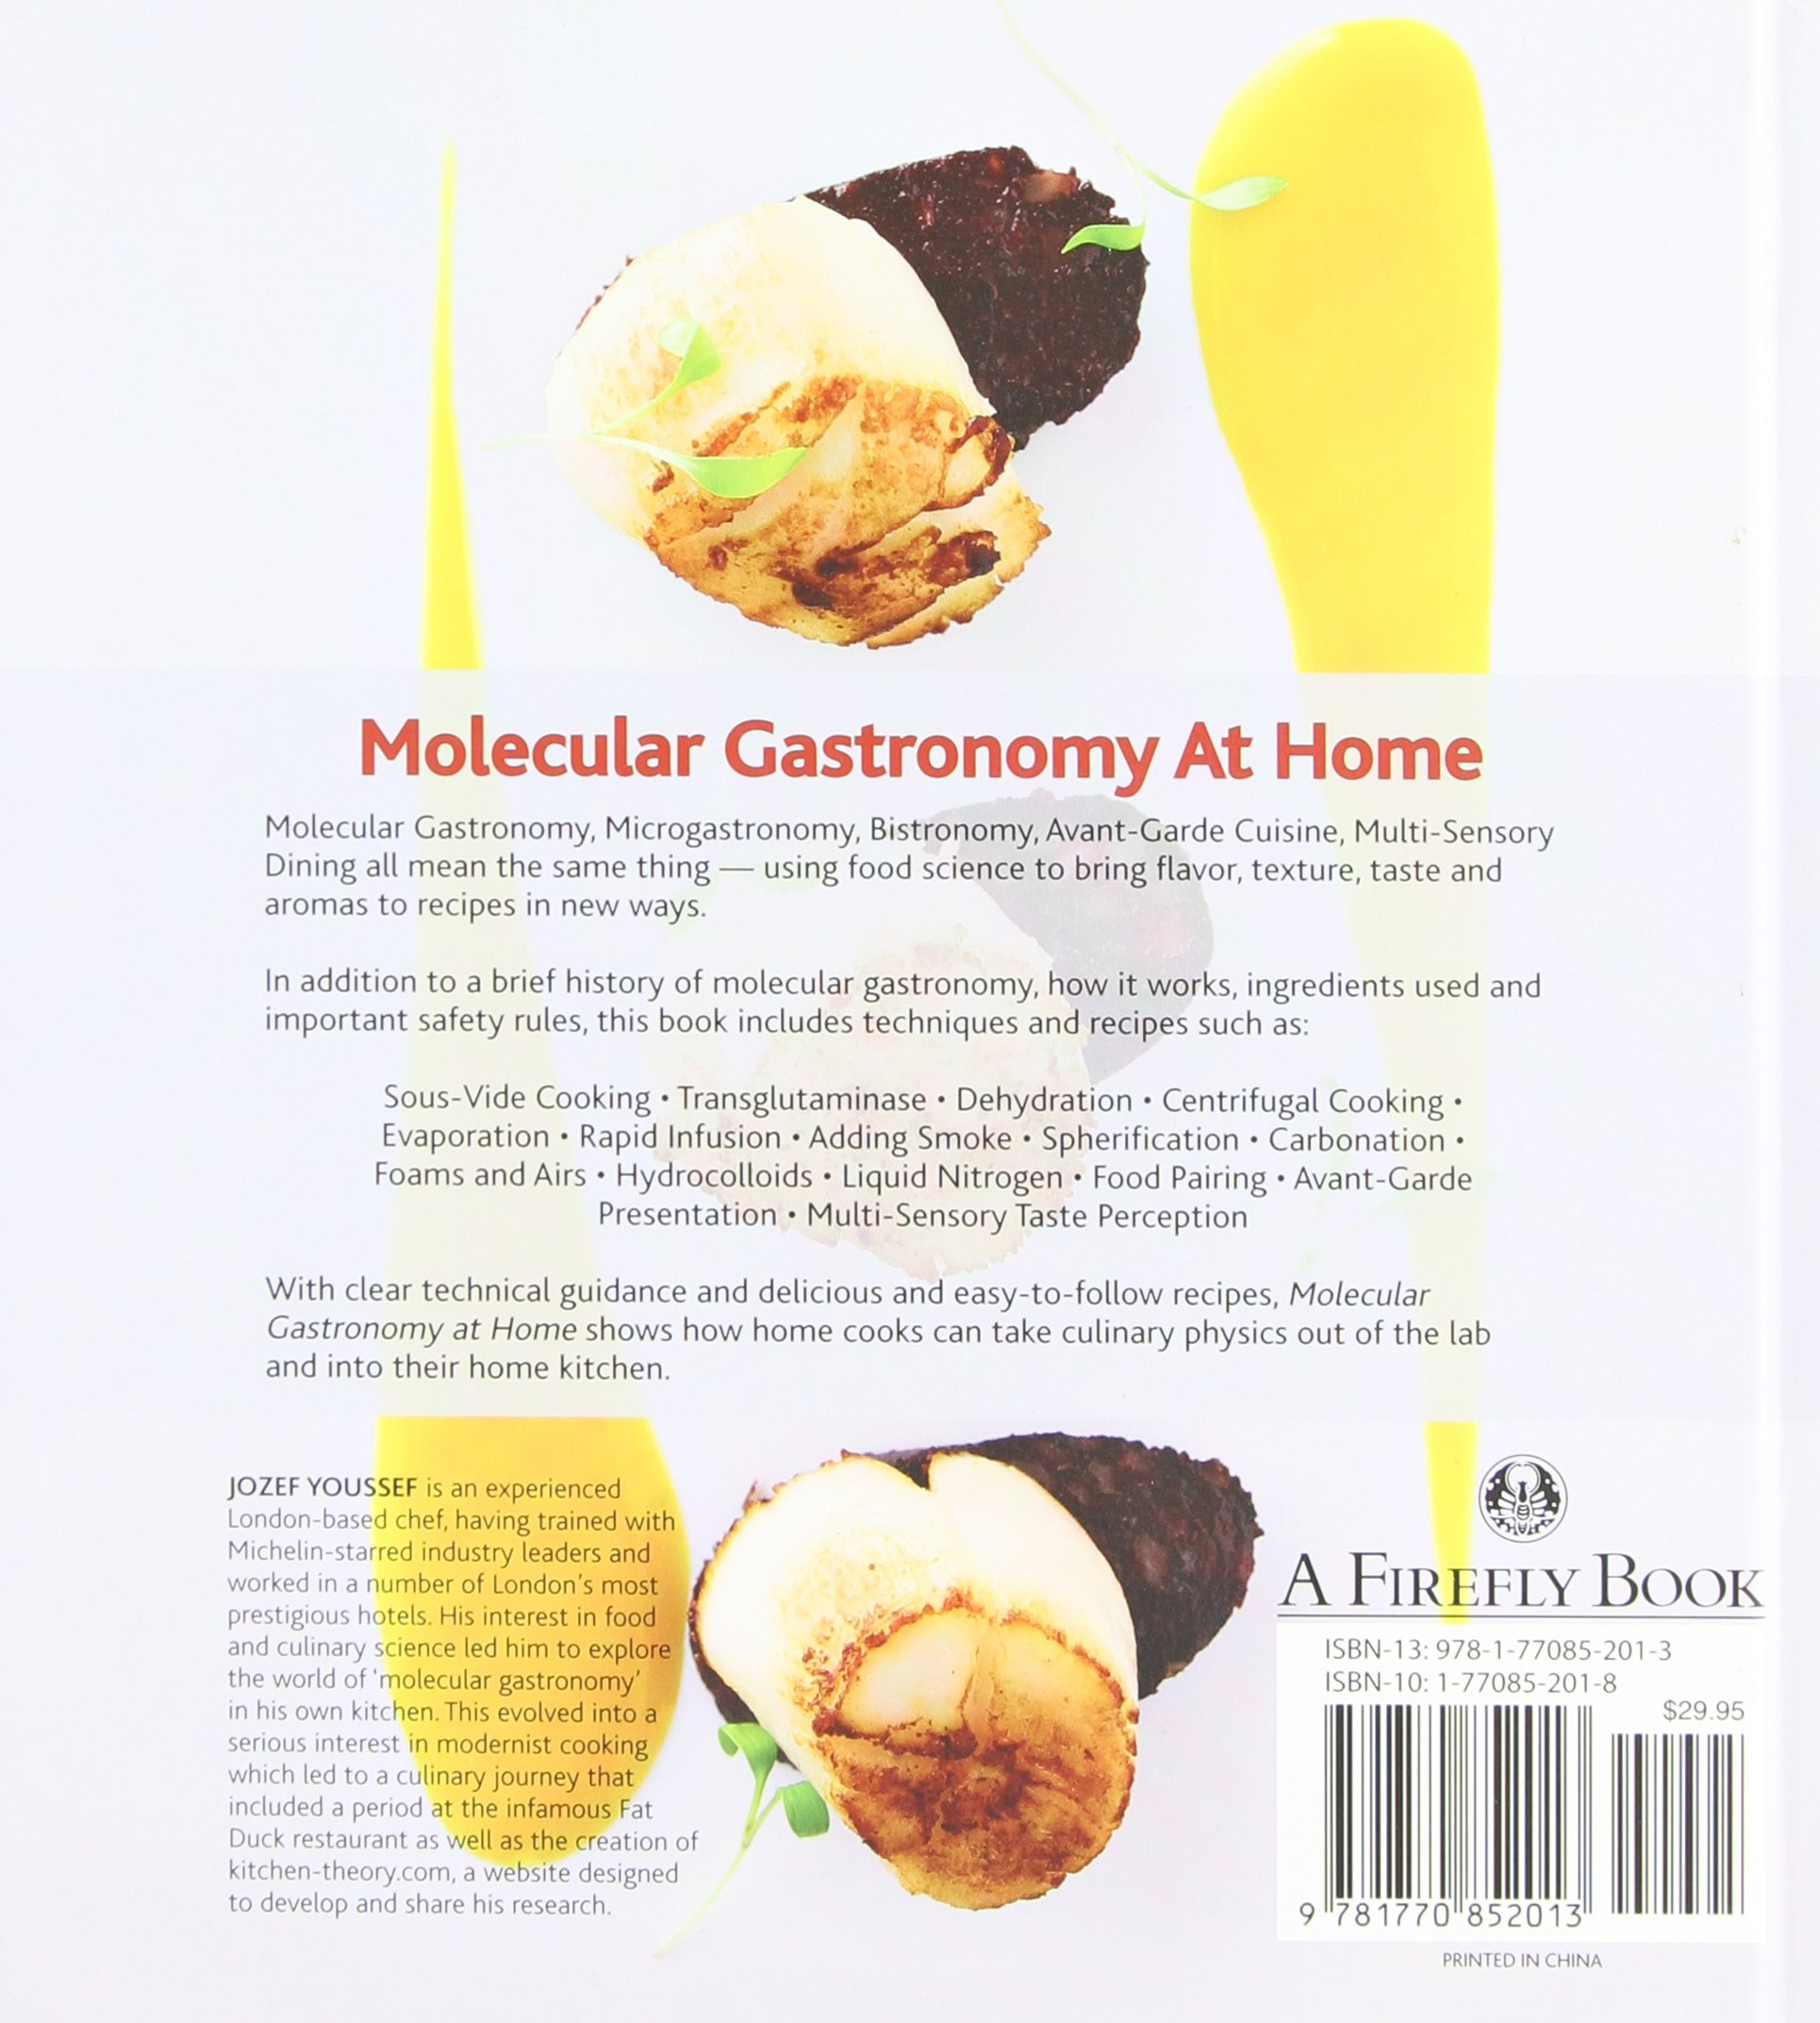 Molecular gastronomy at home taking culinary physics out of the lab molecular gastronomy at home taking culinary physics out of the lab and into your kitchen jozef youssef charles spence amazon libros forumfinder Choice Image